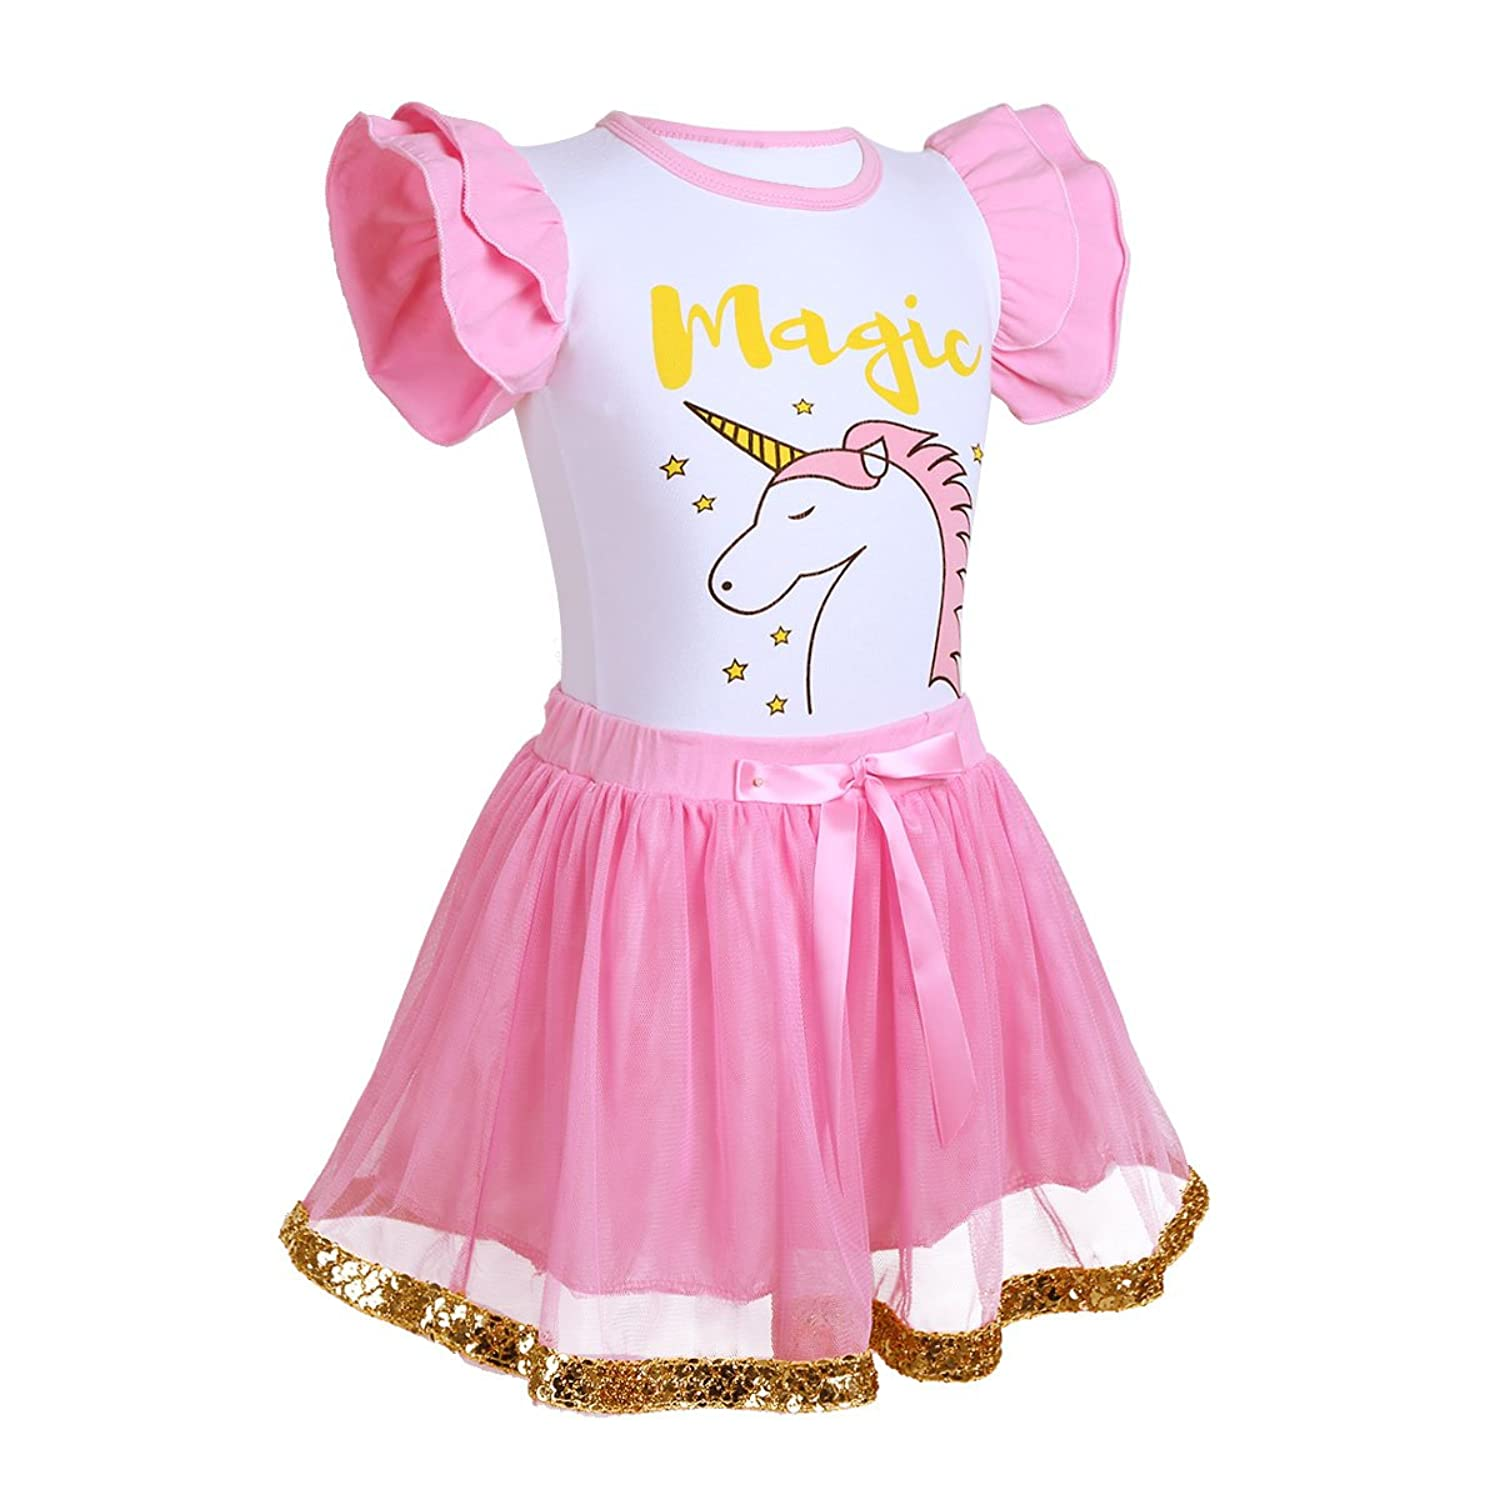 7ae9cd3ea8 iEFiEL Infant Kids Girls Ruffled Sleeves Unicorn Letter Printed Tops With  Tutu Skirt Set Holiday Party Cartoon Dress Outfits: Amazon.co.uk: Clothing